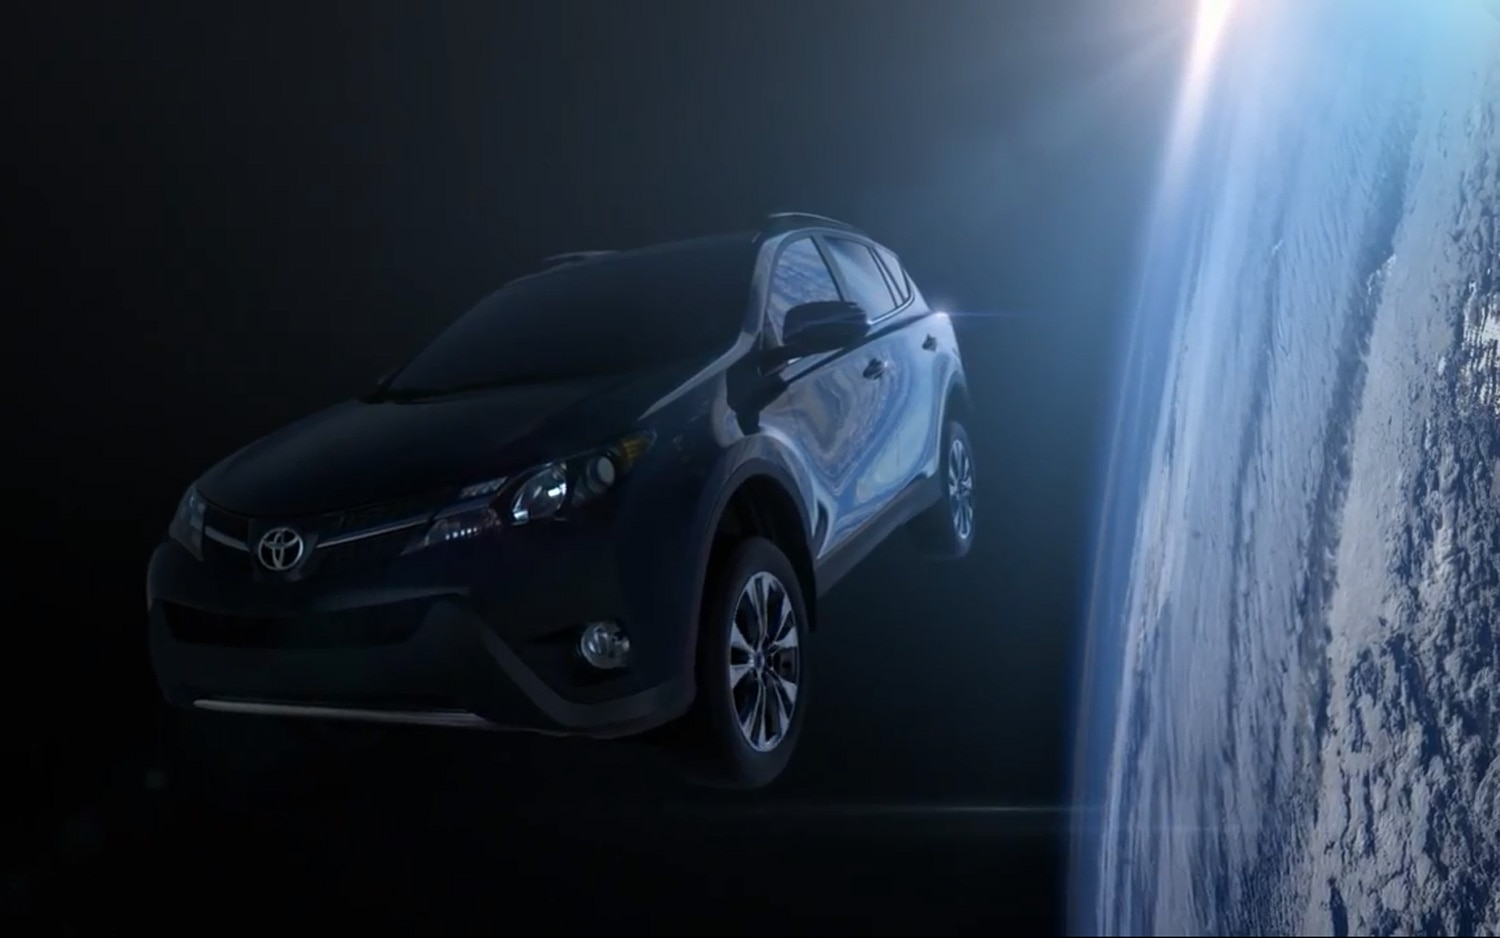 2013 Toyota RAV4 I Wish Commerical Image 4